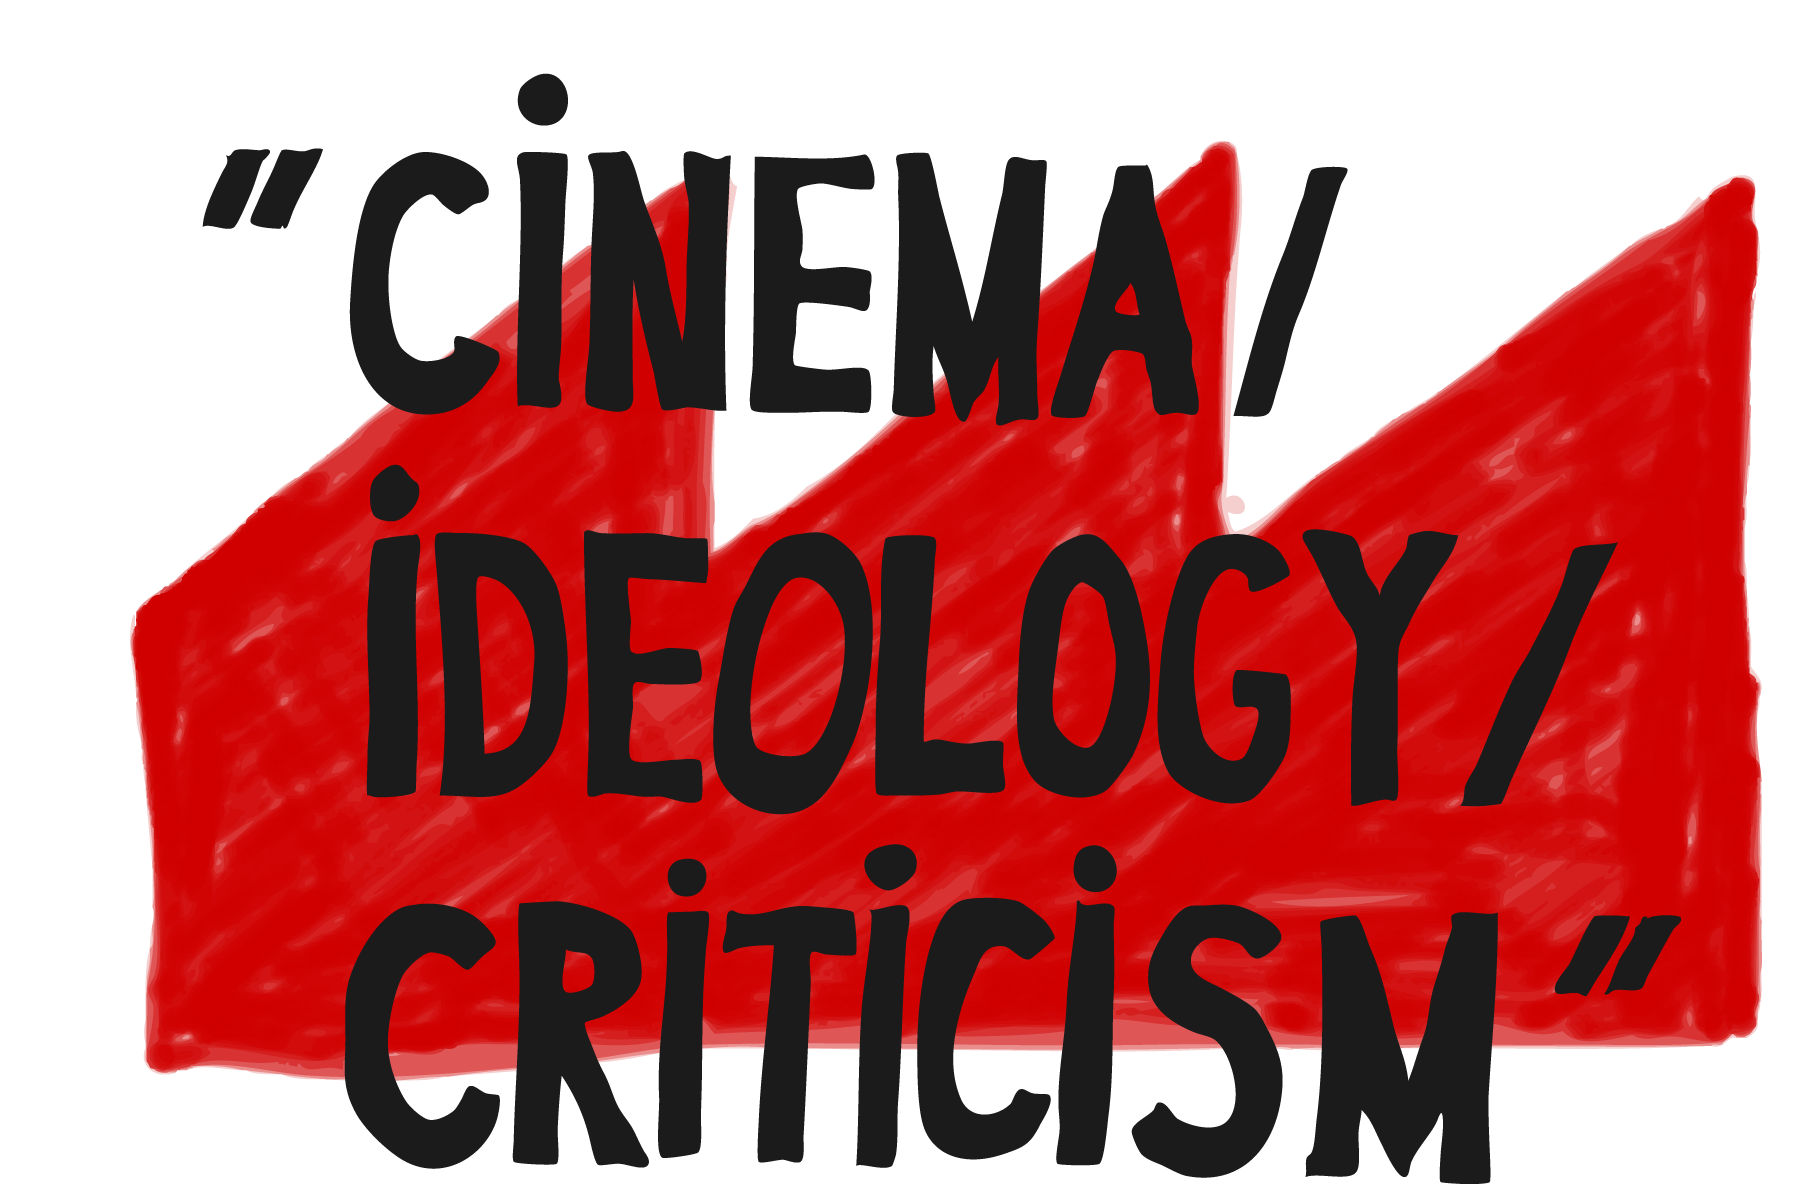 """Cinema / Ideology / Criticism"""